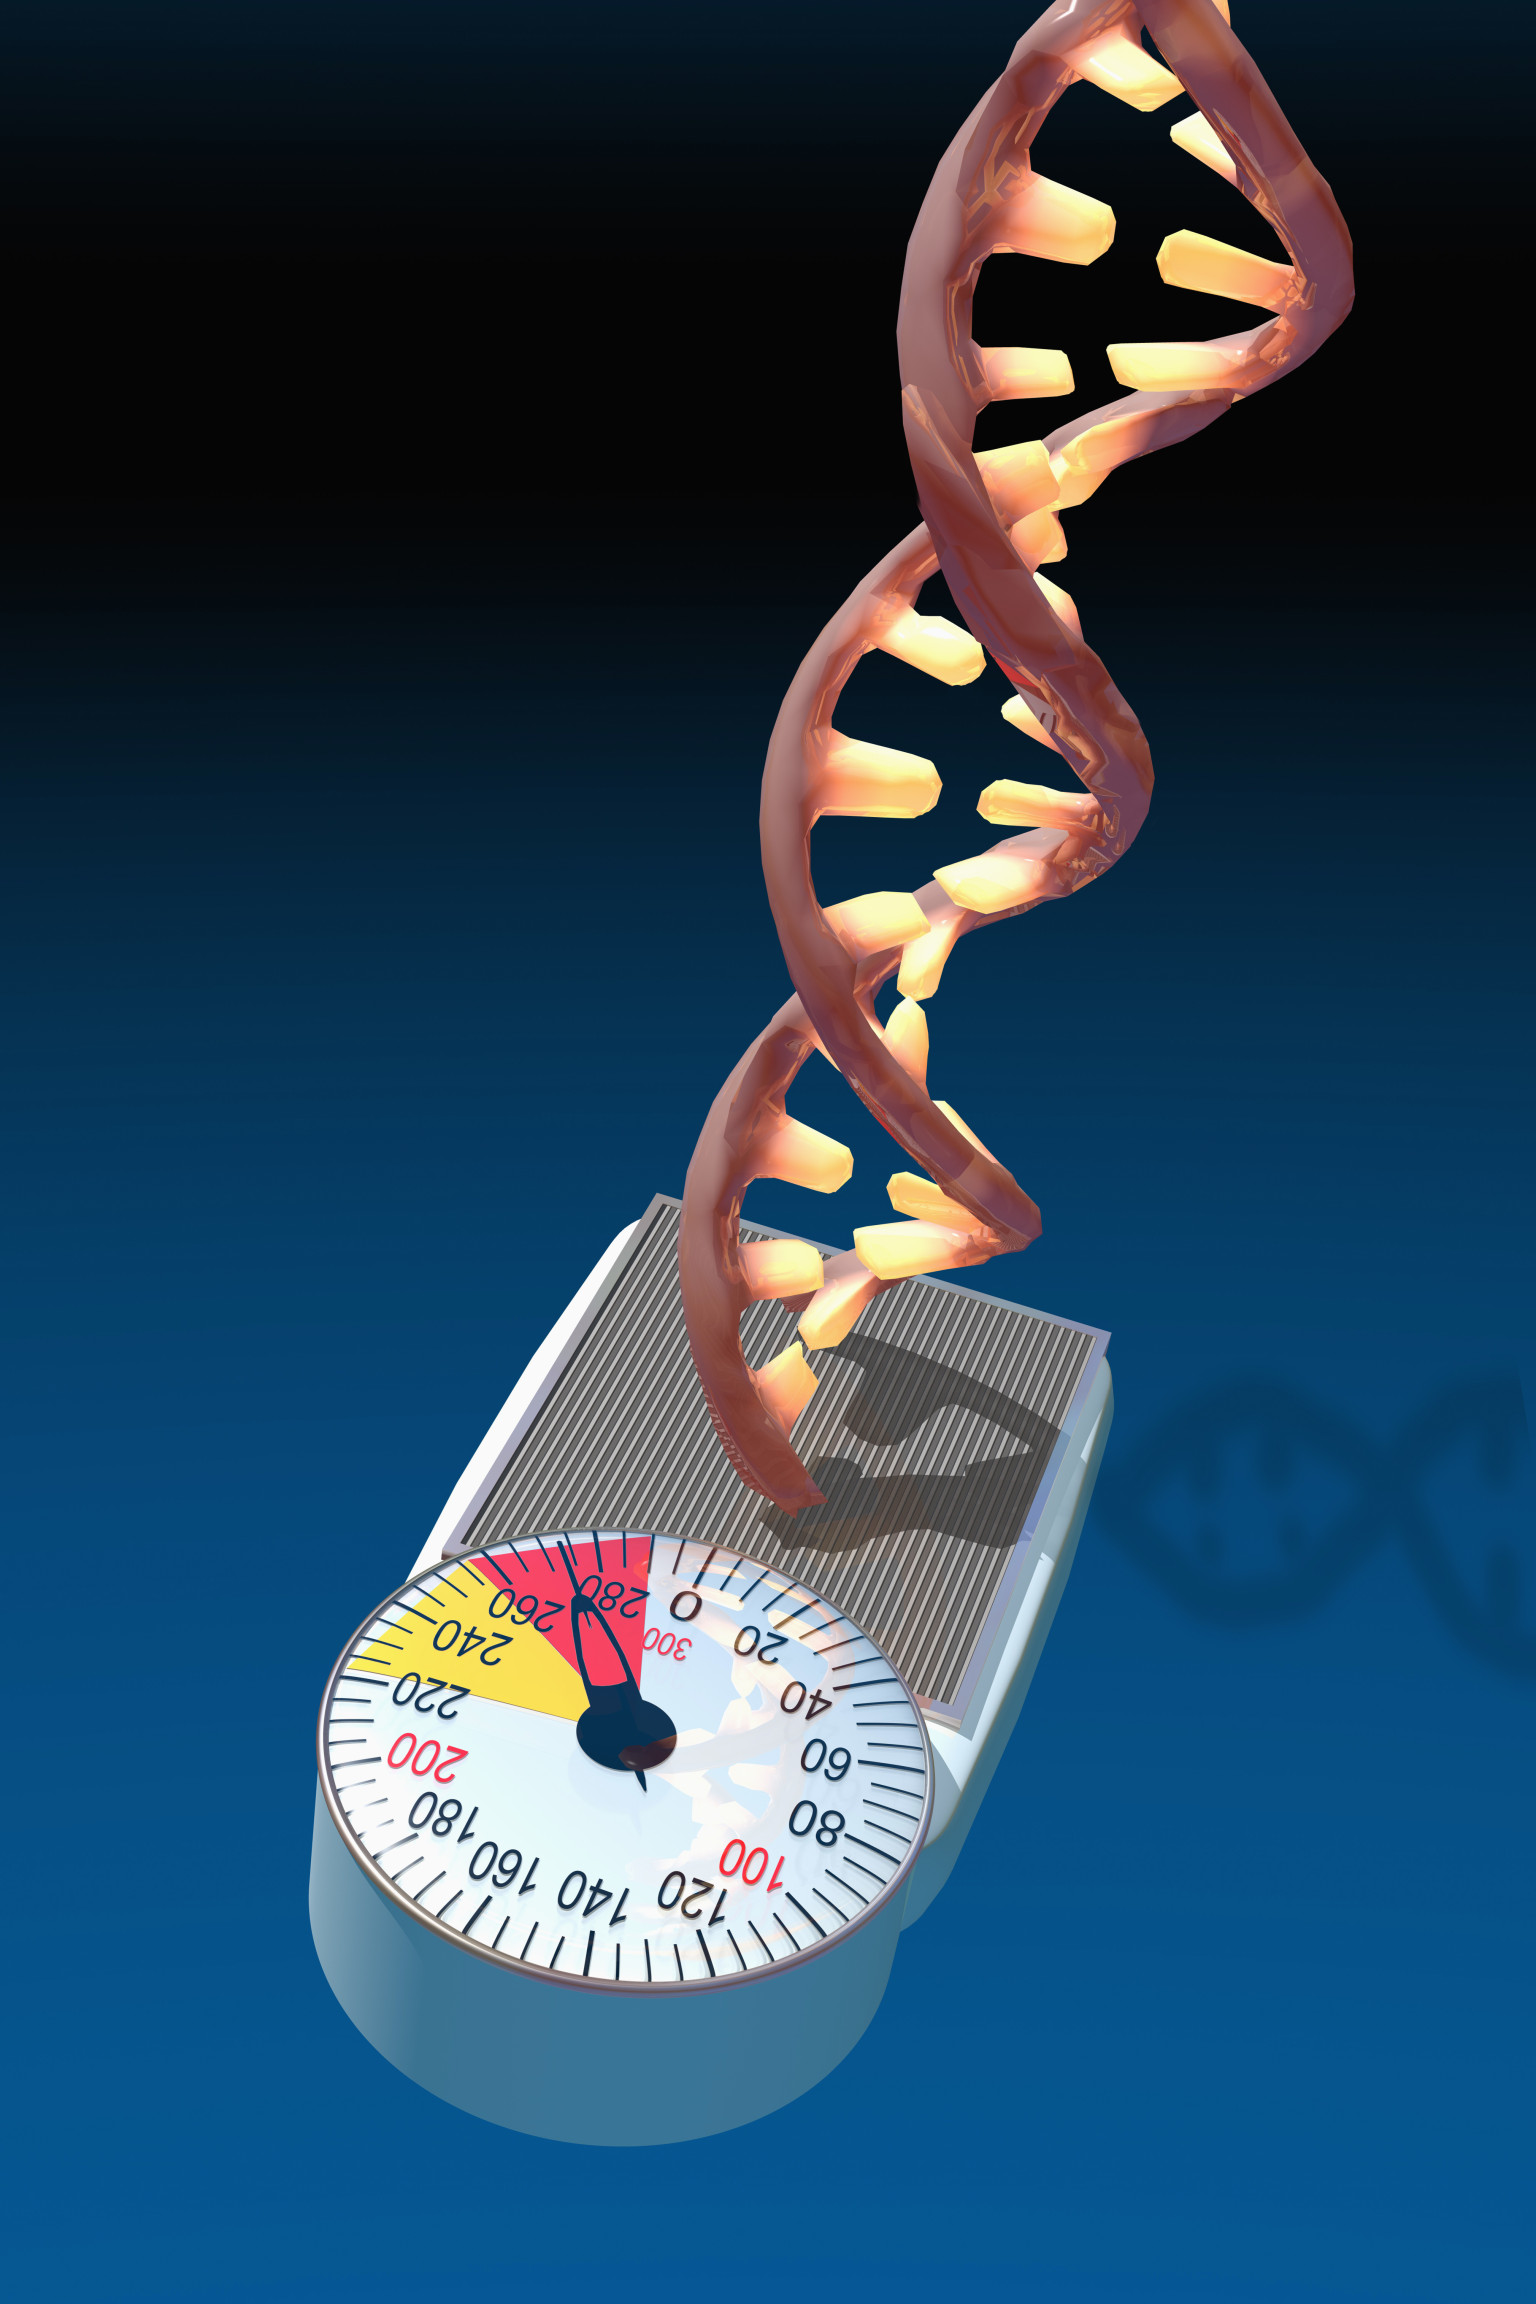 obesity and genetics Childhood body weight is strongly influenced by genes, according to new research published today in the international journal of obesity previous research has shown that obesity runs in families and twin studies suggest that this is largely due to genetic factors, with heritability estimates more.